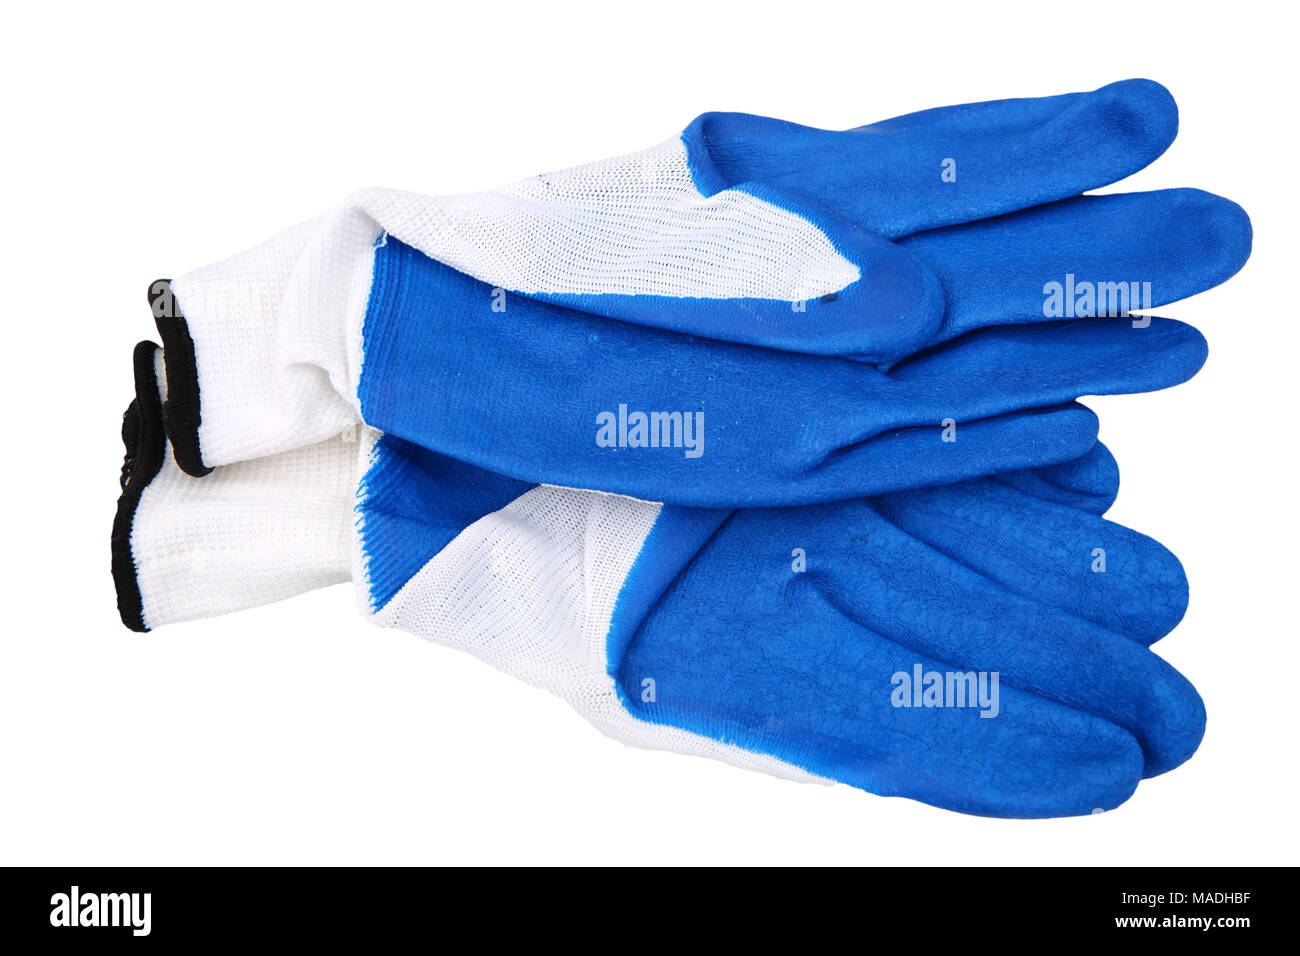 Protective gloves are one of the basic elements of personal protection for many works, whether at home or at work. - Stock Image